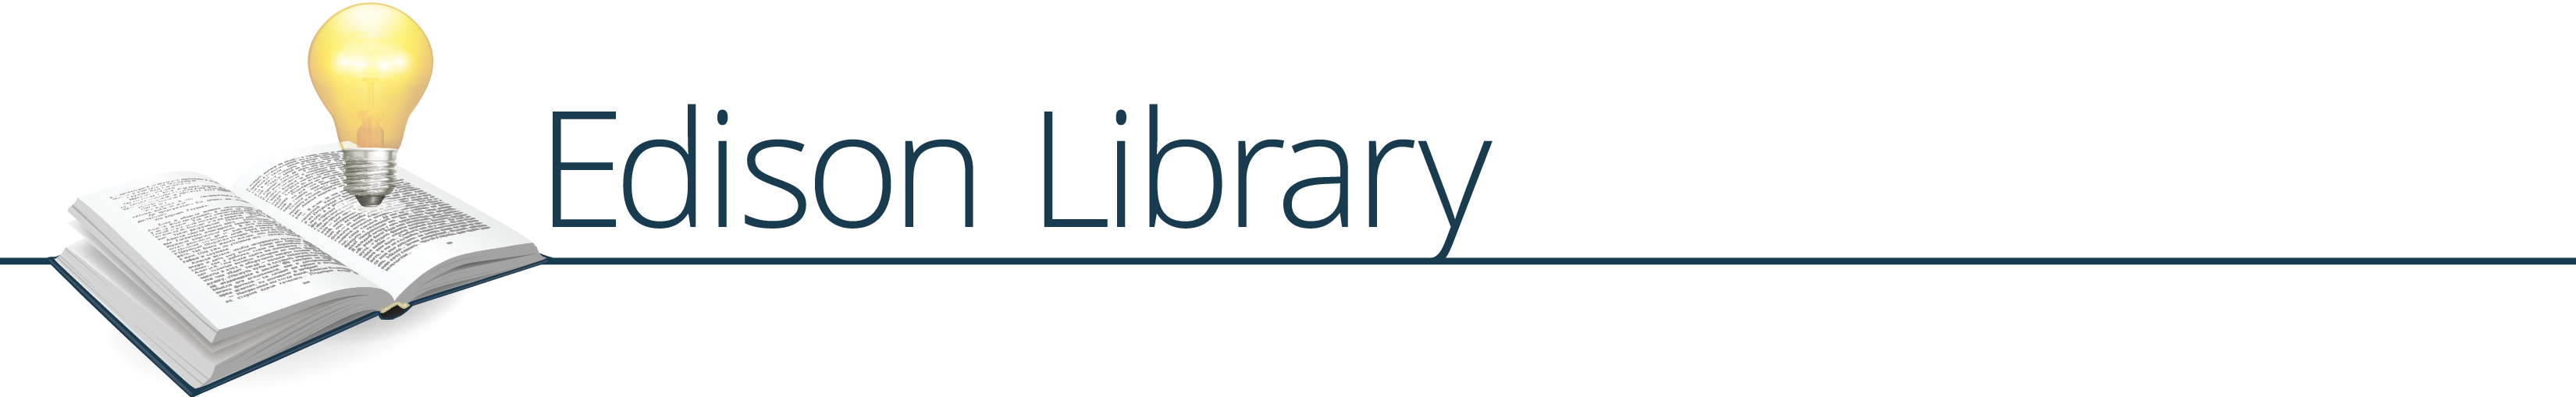 Library Graphic Title